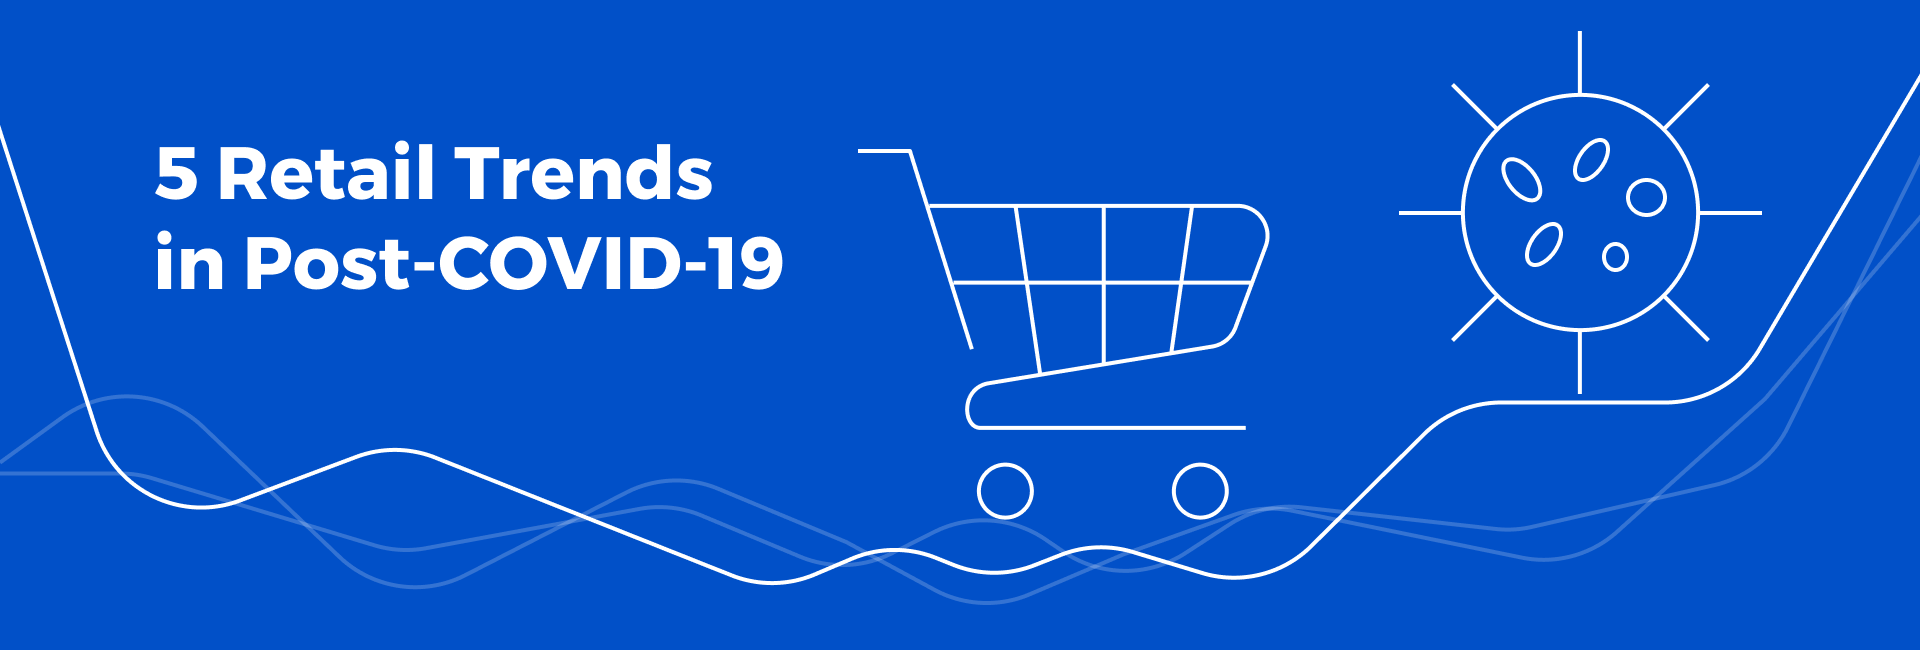 5 Retail Trends to Strive for in the Post-COVID-19 World